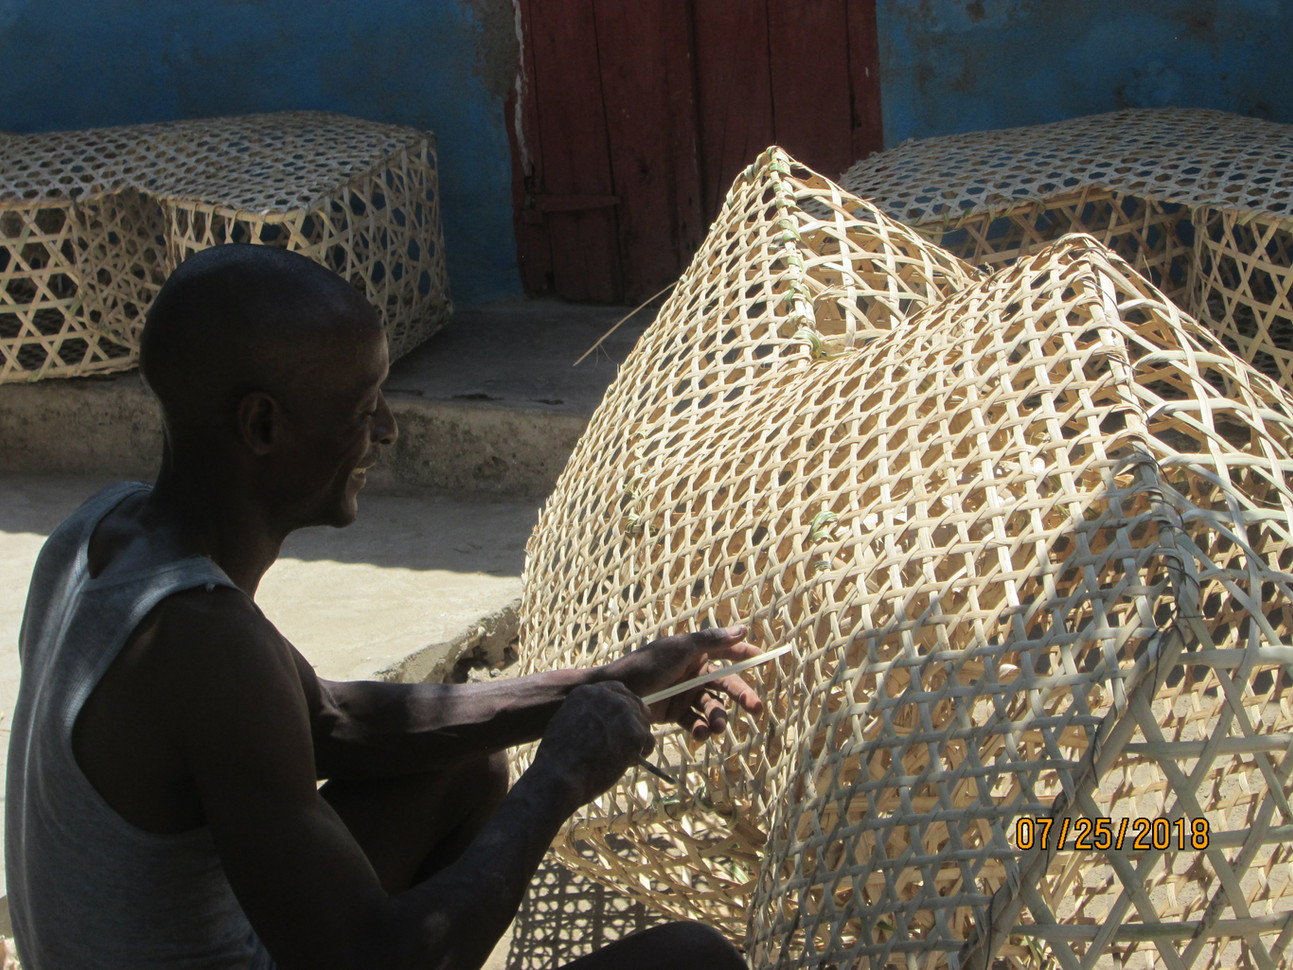 More sustainable fishing gear distributed to two communities.